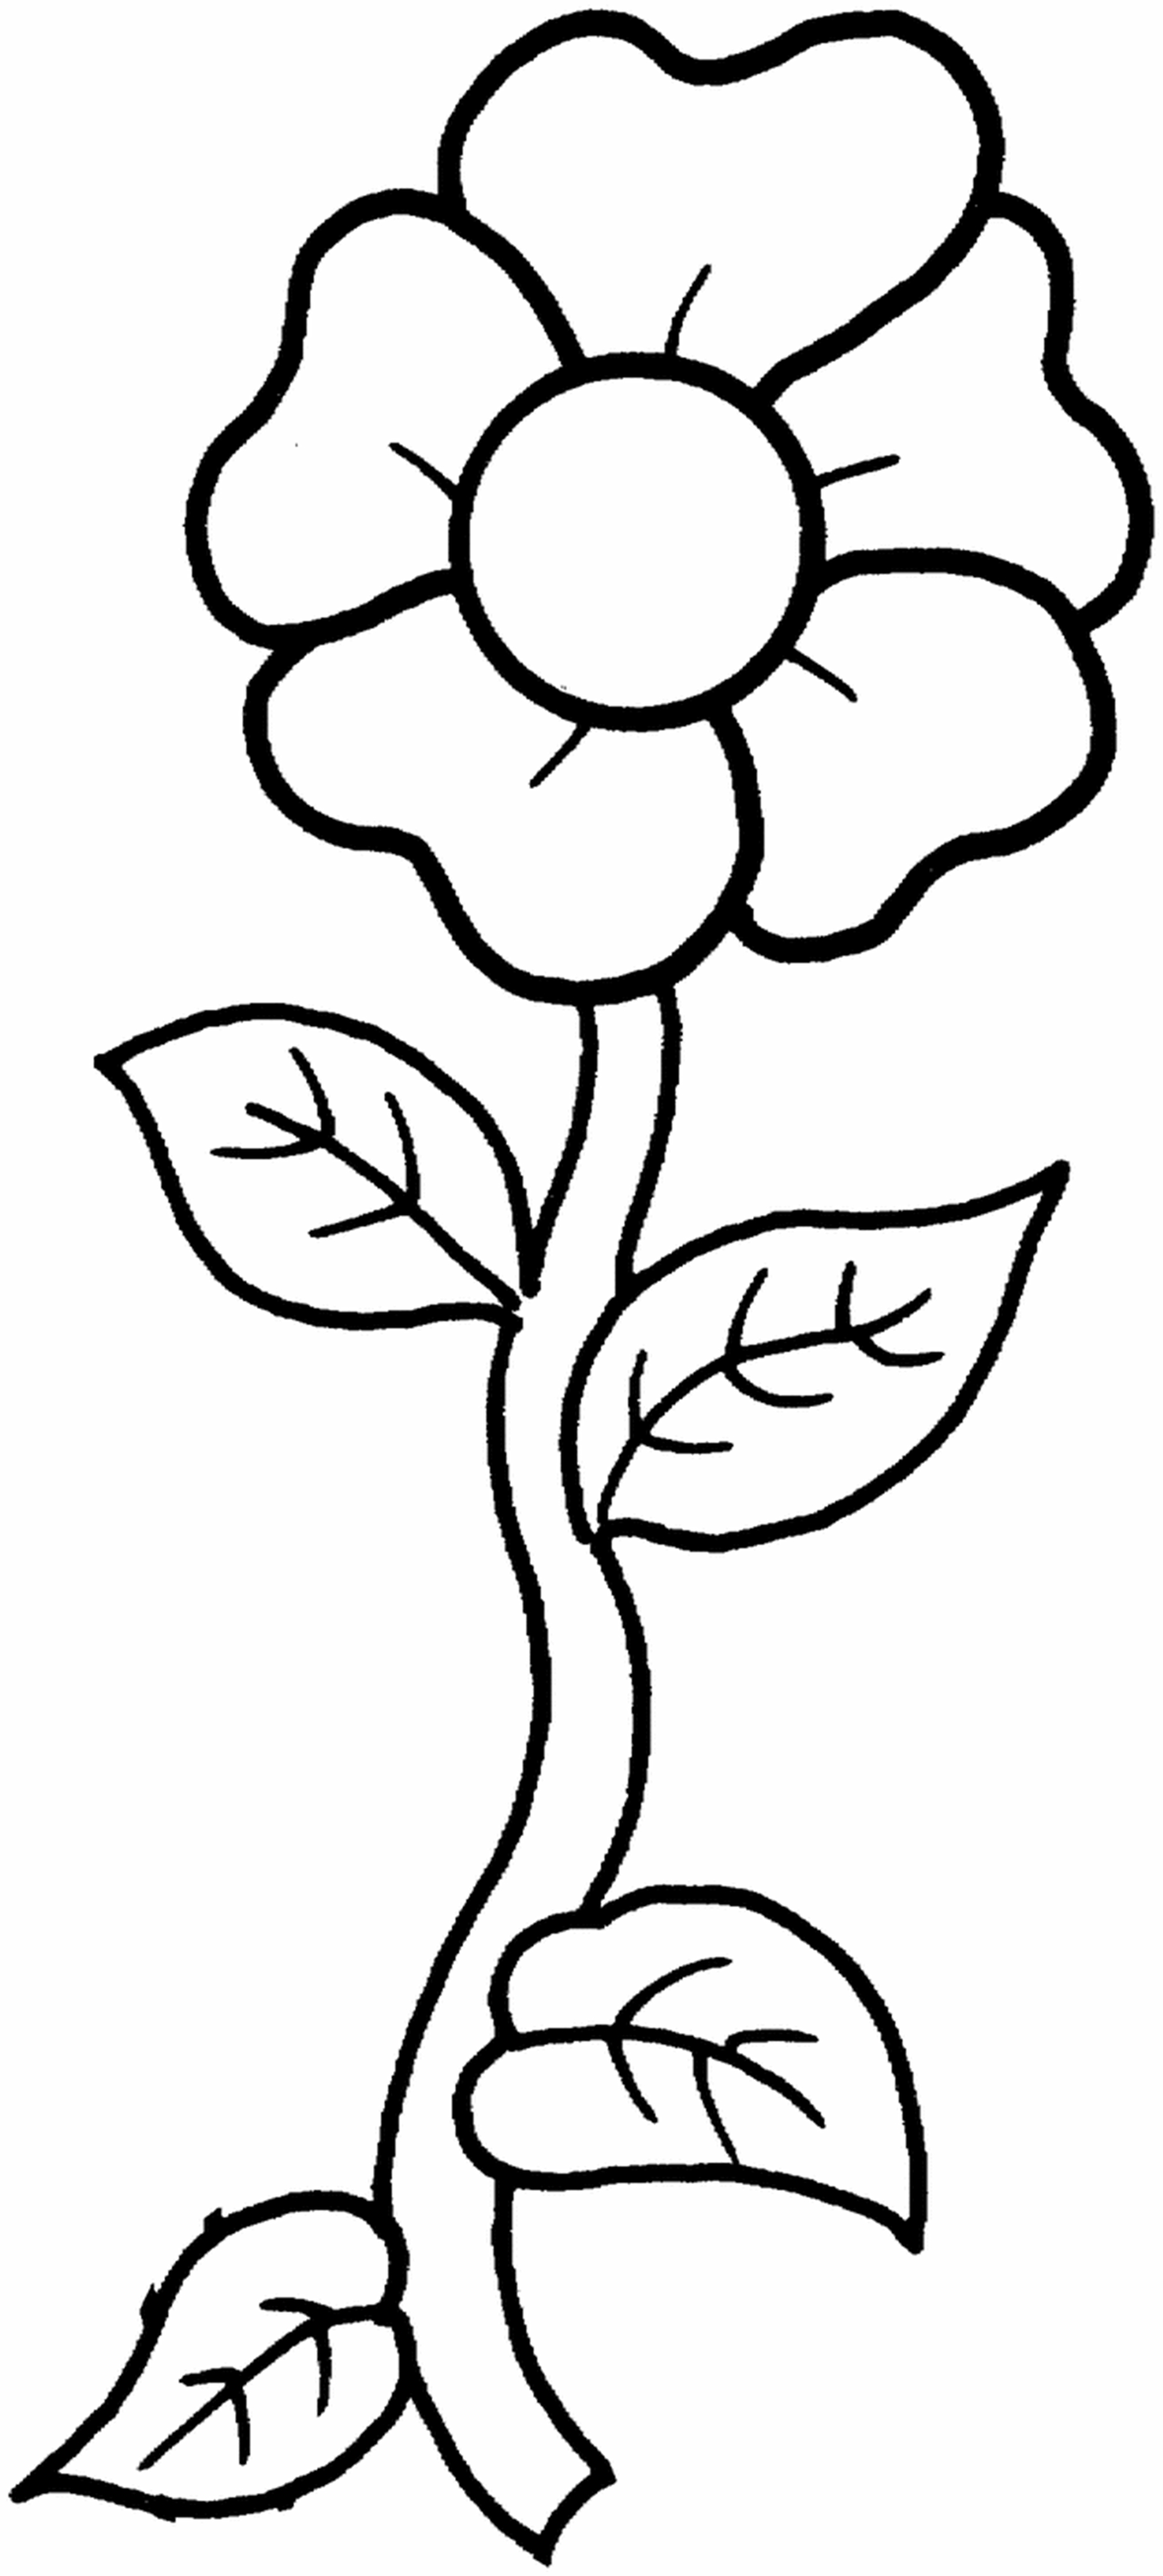 flower coloring pages to print bouquet of flowers coloring pages for childrens printable pages print to coloring flower